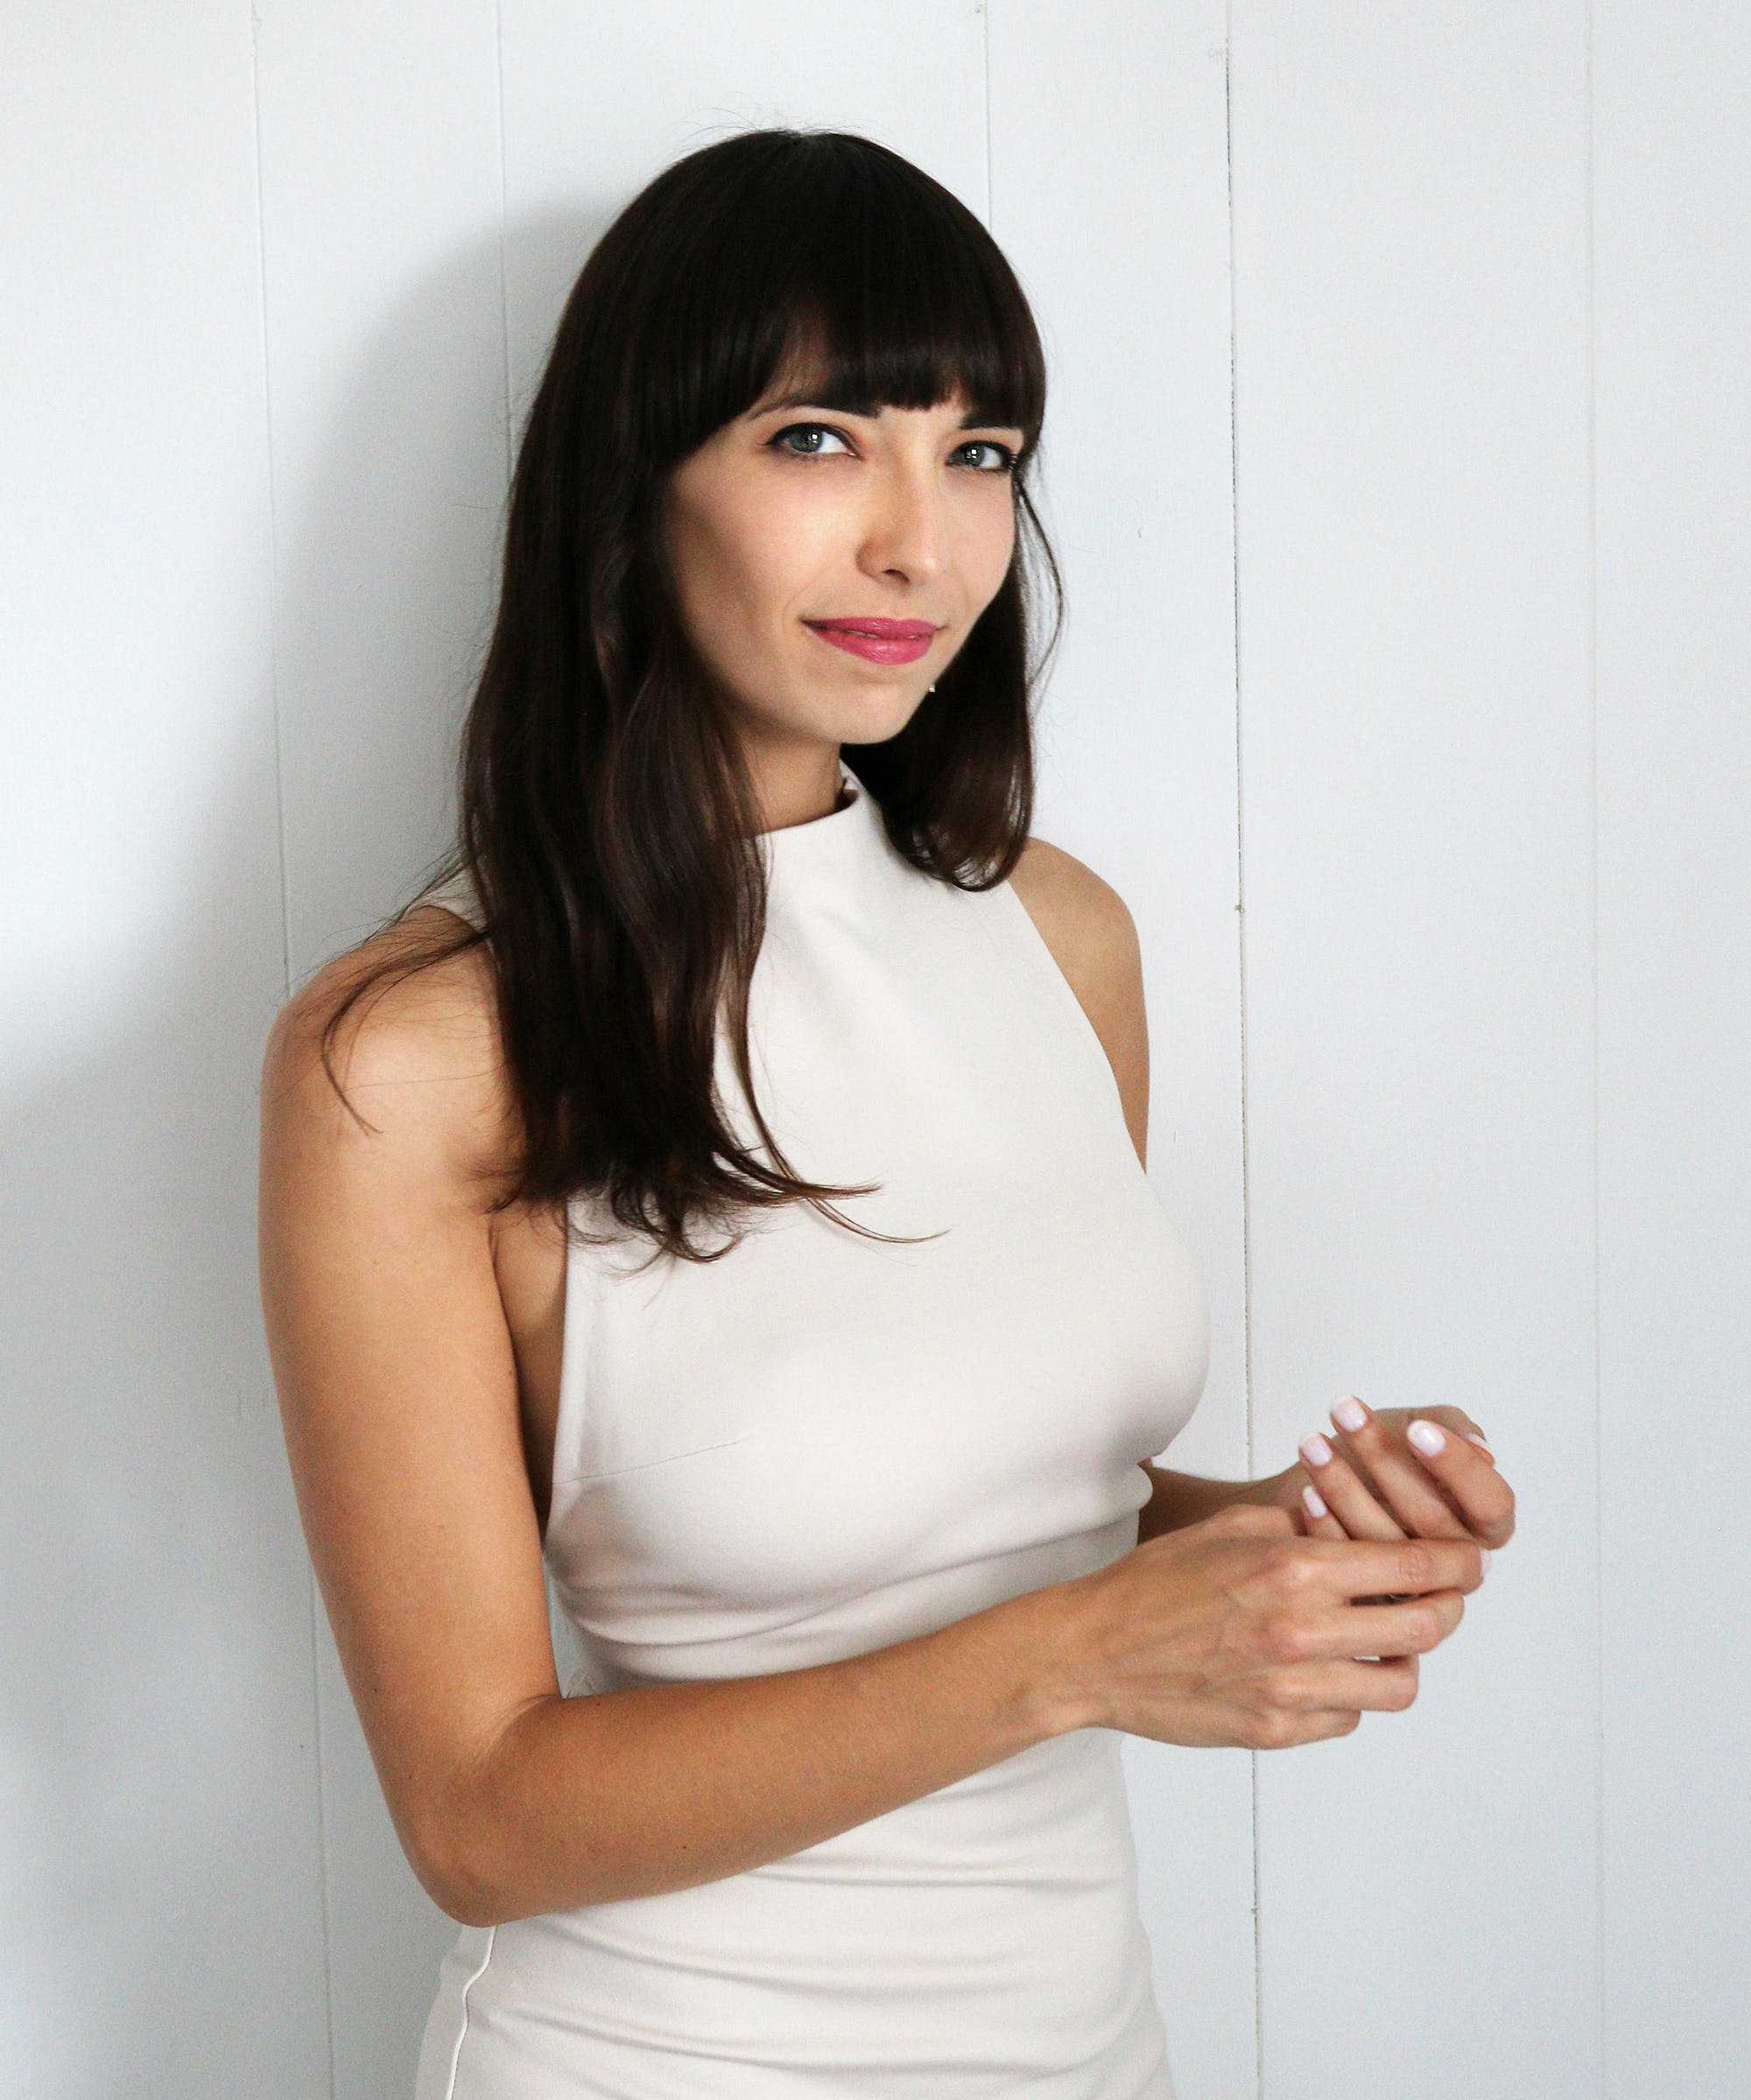 Jodie Emery The 5 most badass women in weed